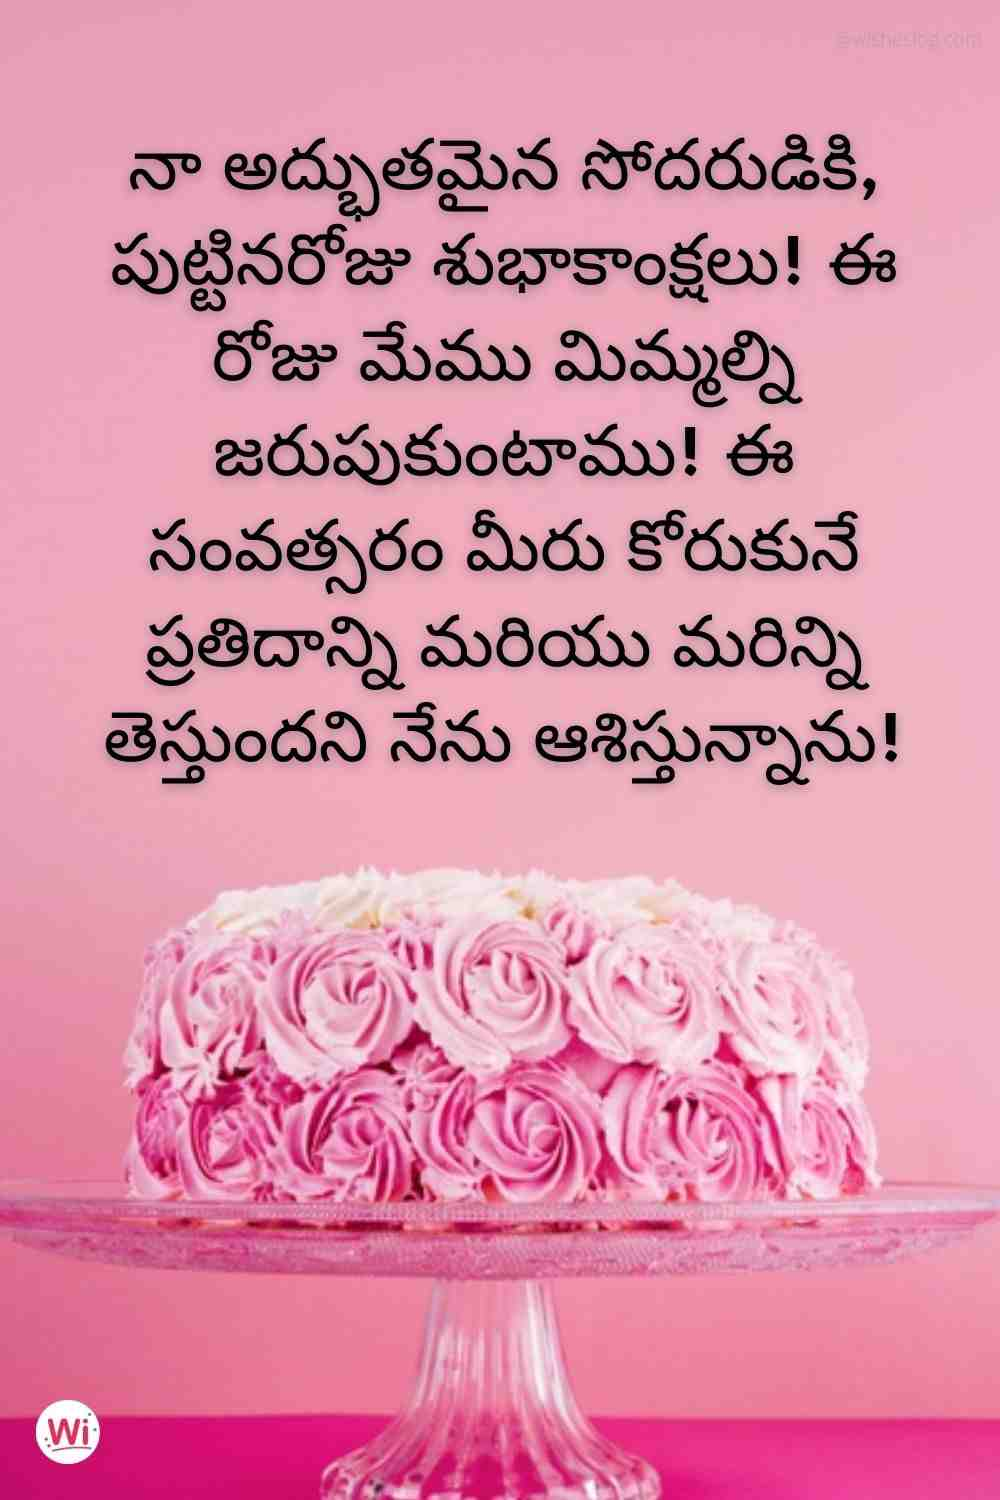 happy birthday wishes in telugu for brother